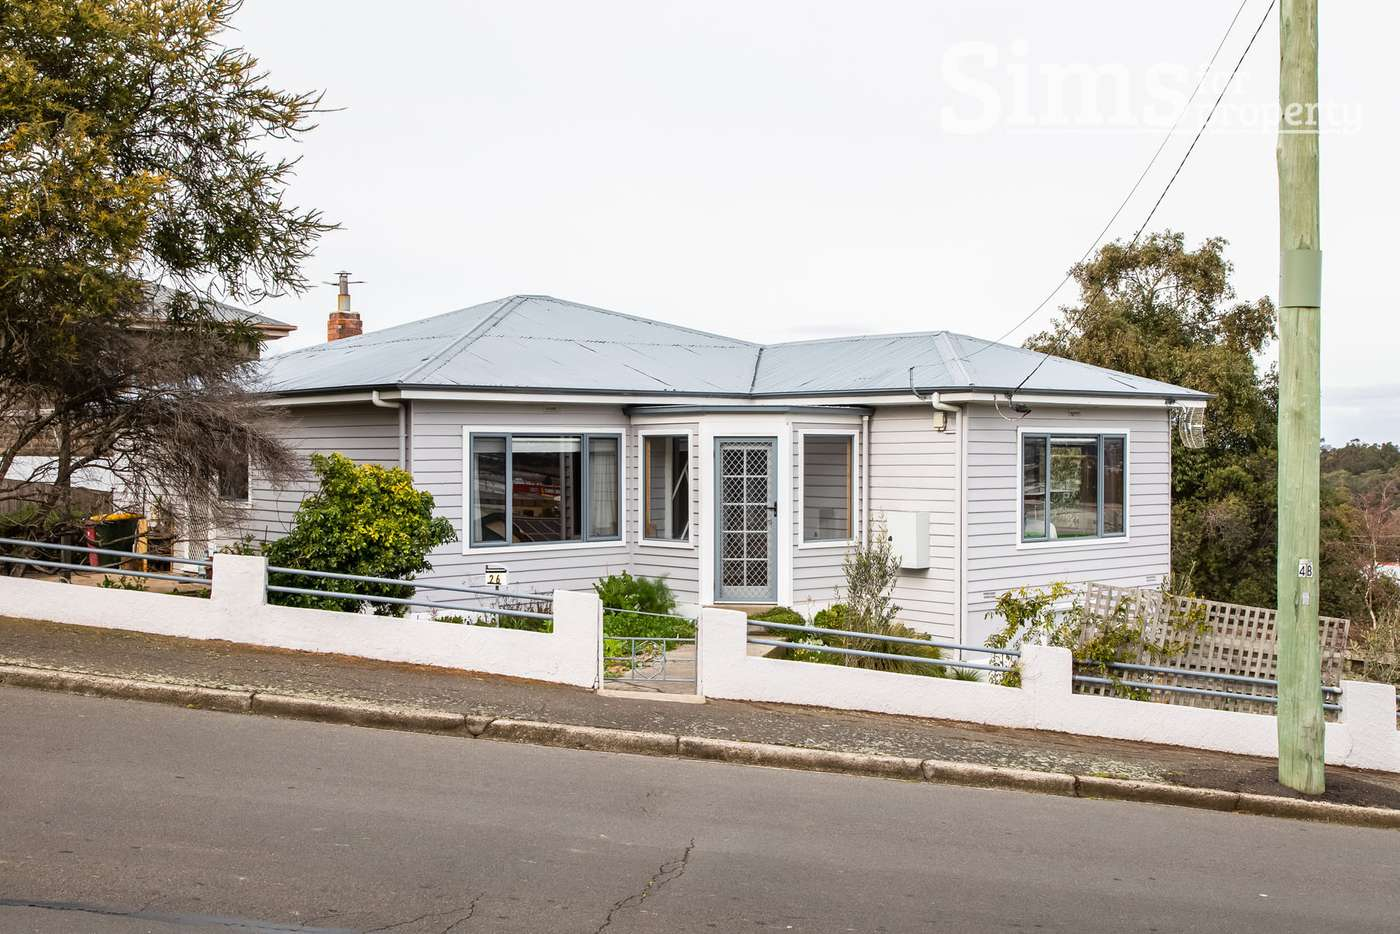 Main view of Homely house listing, 26 Wood Street, Mowbray TAS 7248